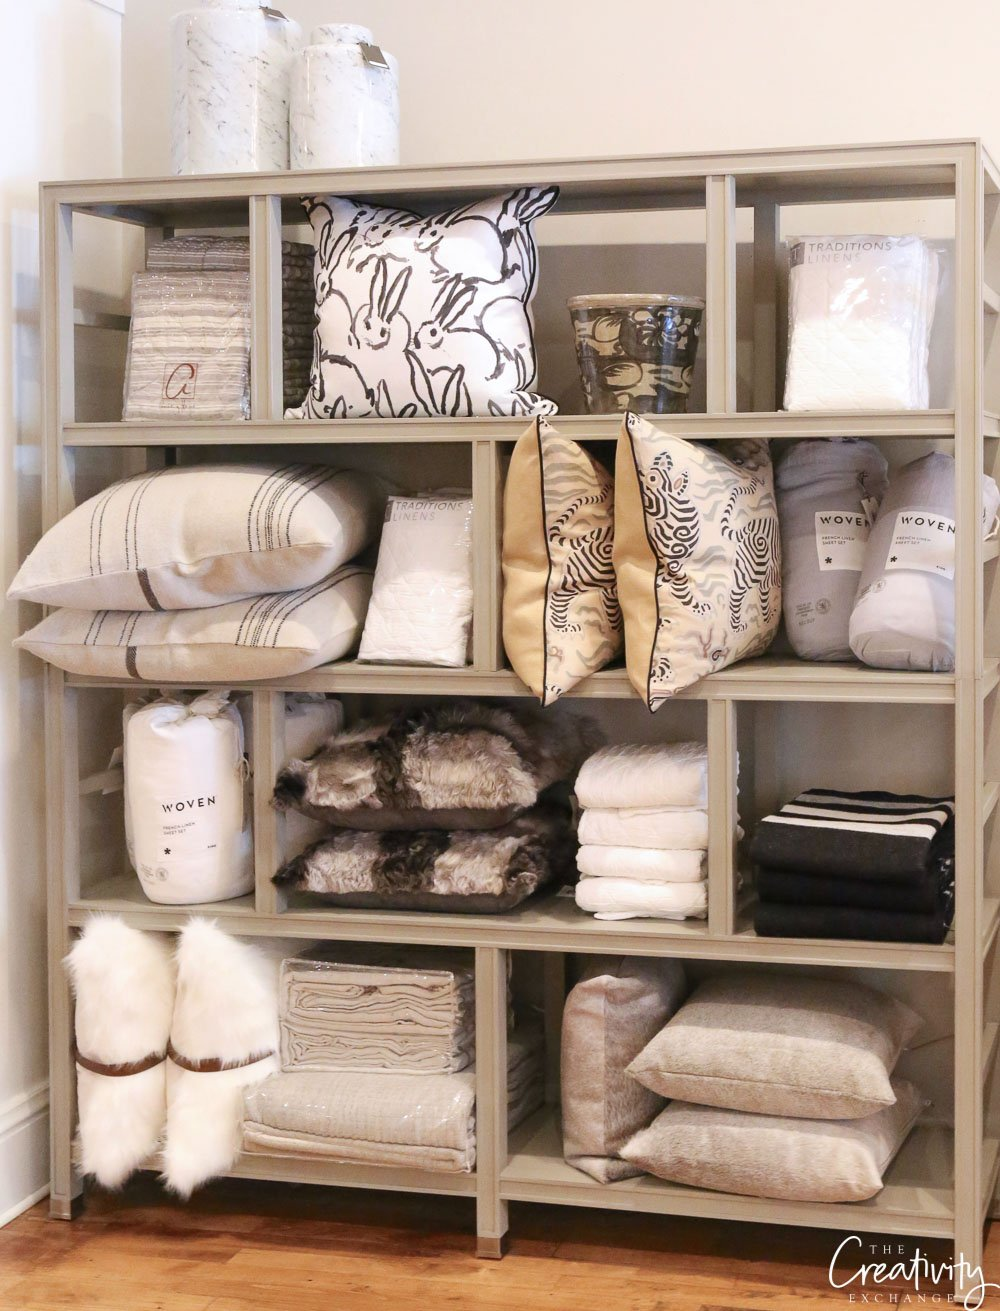 Pillows and accessories from Alice Lane Home